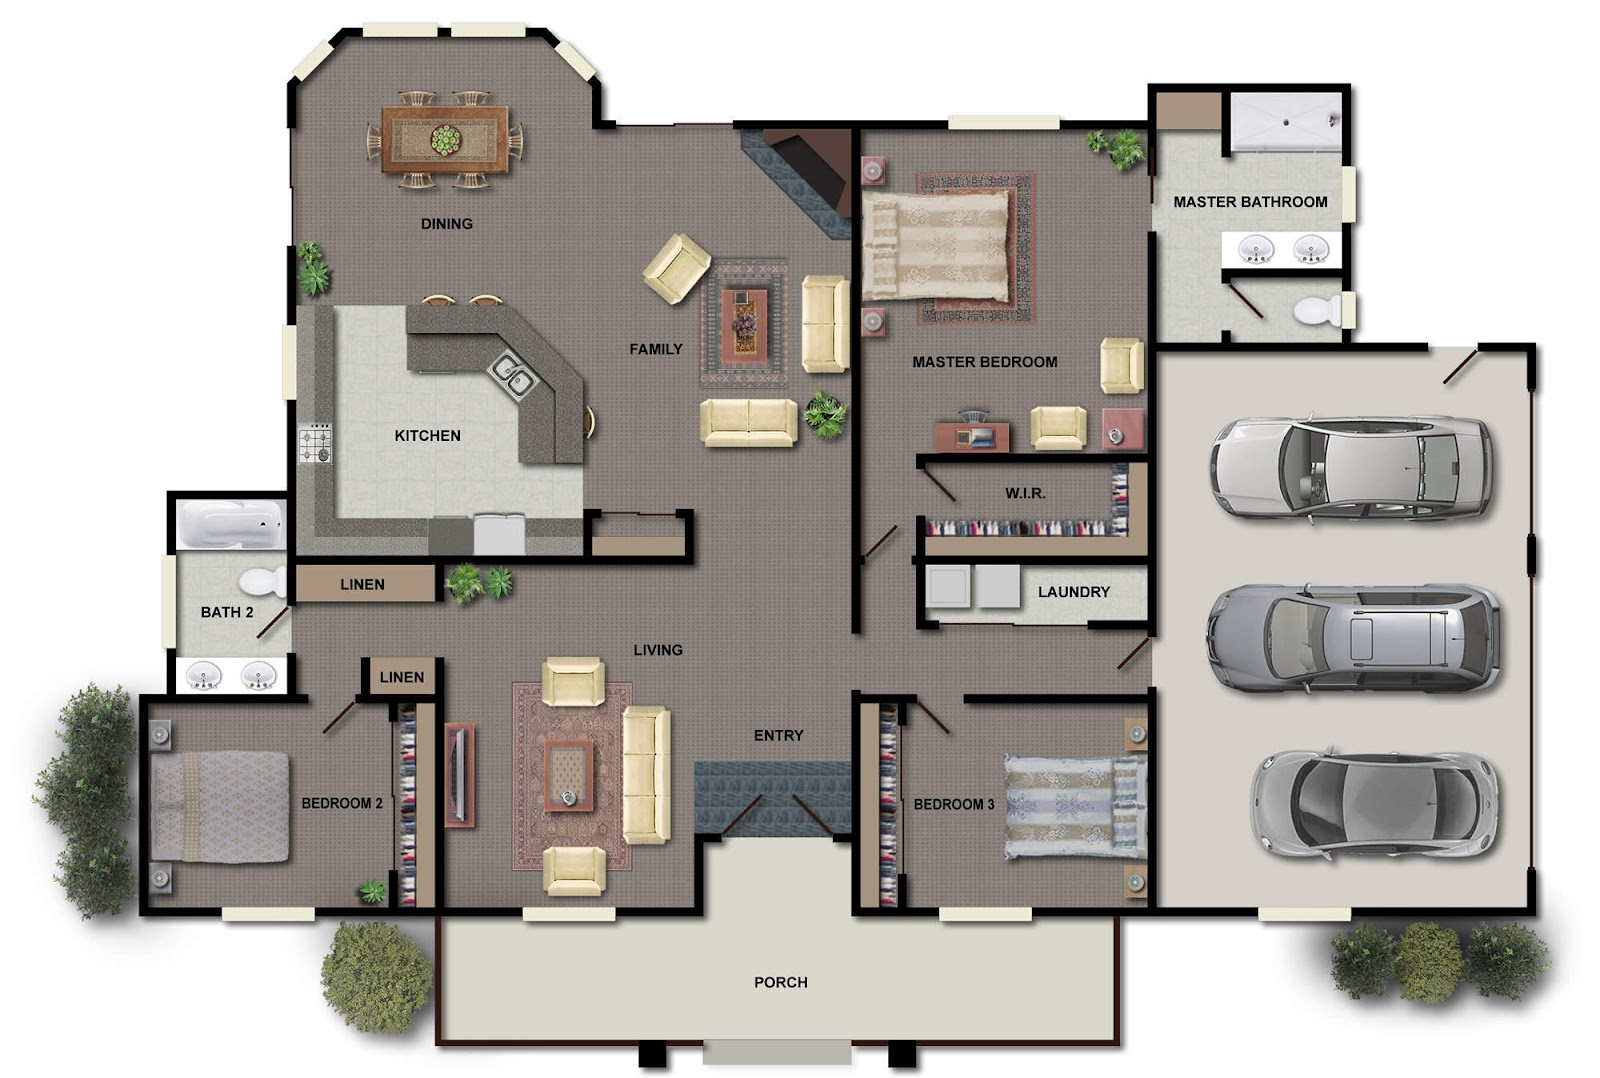 Fabulous Modern House Floor Plans 1600 x 1078 · 265 kB · jpeg